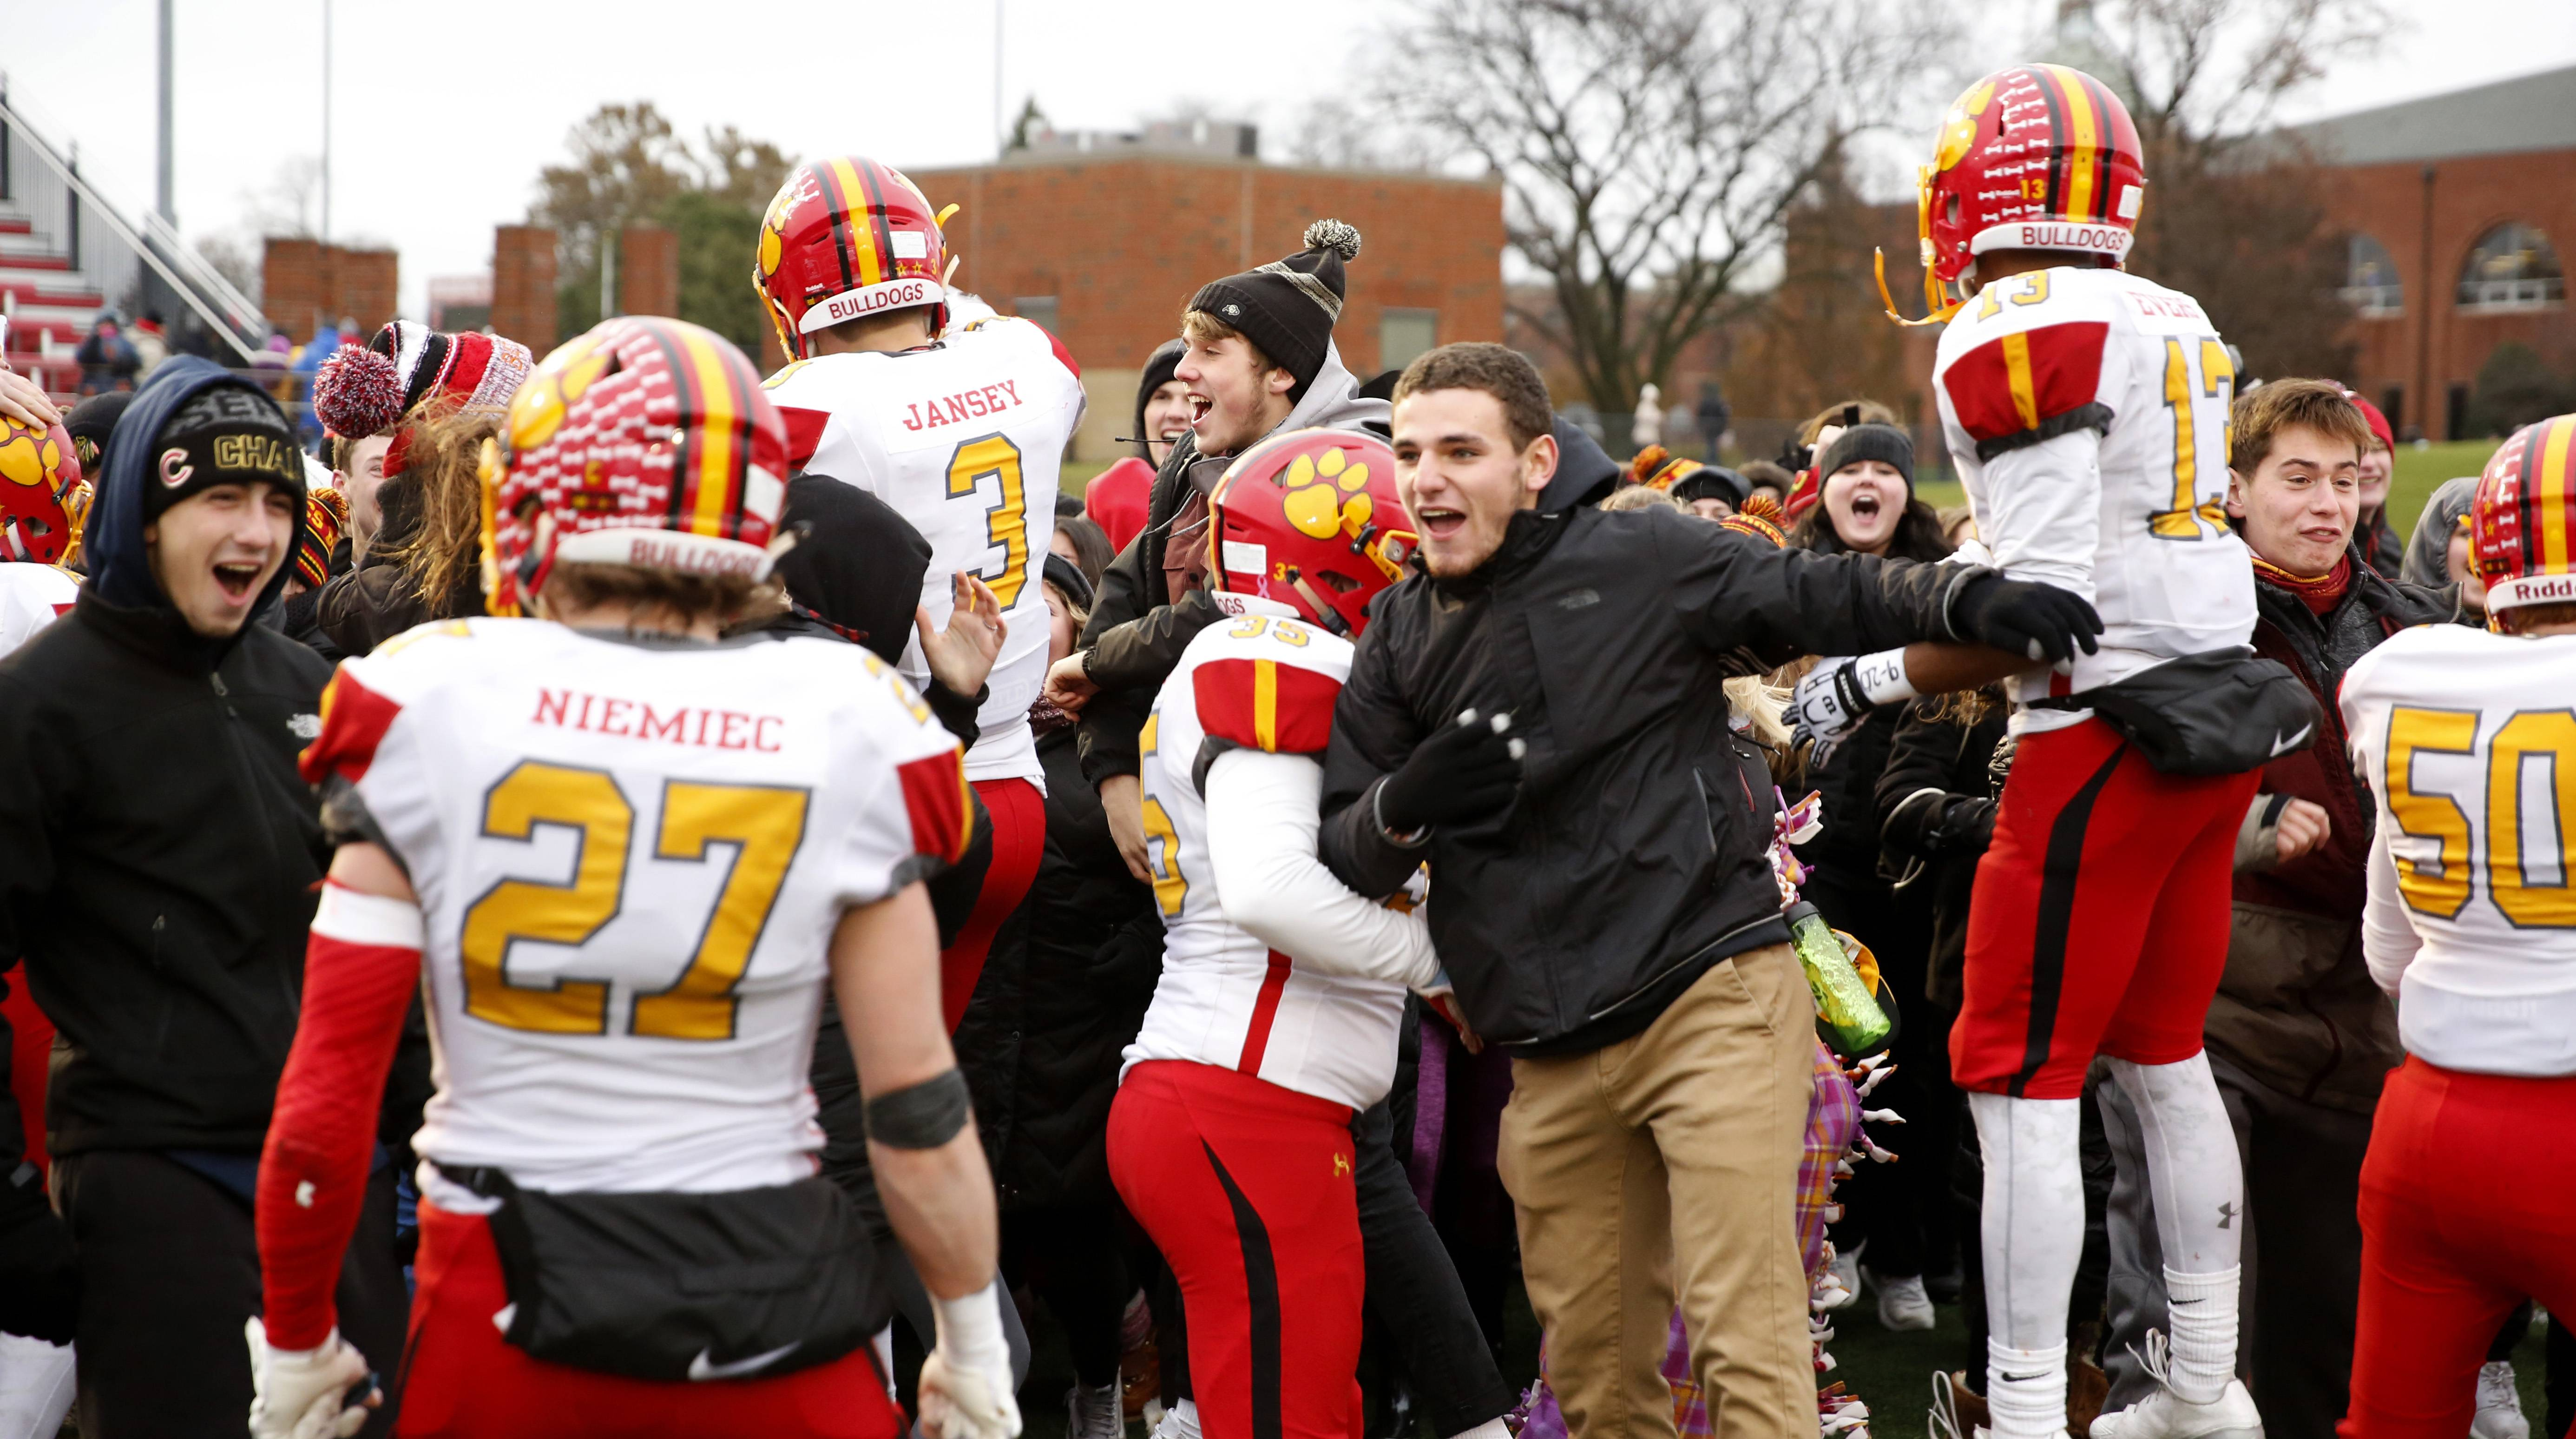 Batavia players and their fans celebrate a 23-13 win over Benet Academy in the Class 7A football semifinals in Lisle.